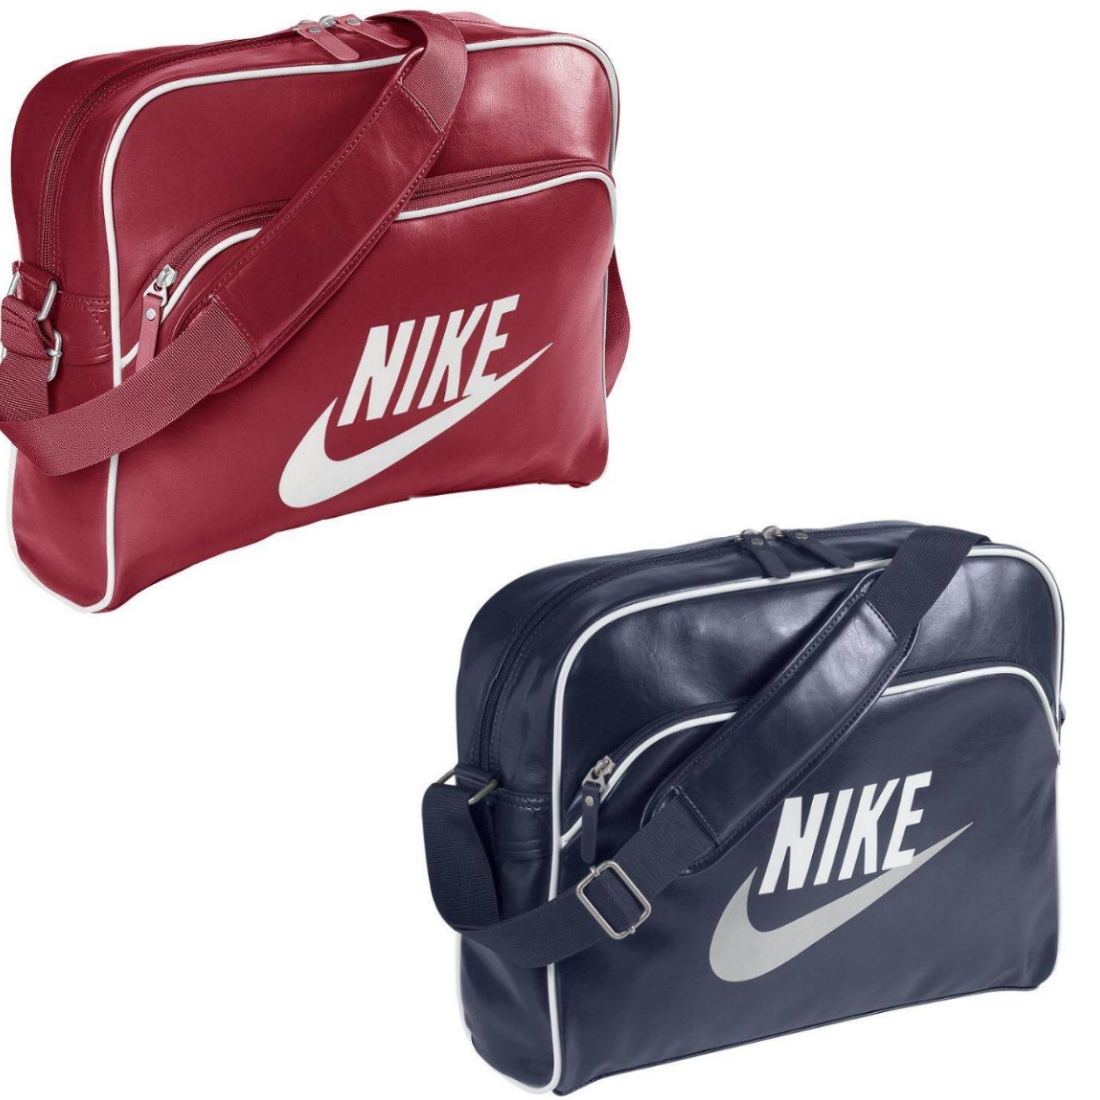 nike heritage si tasche umh ngetasche schultertasche damen herren blau rot ebay. Black Bedroom Furniture Sets. Home Design Ideas